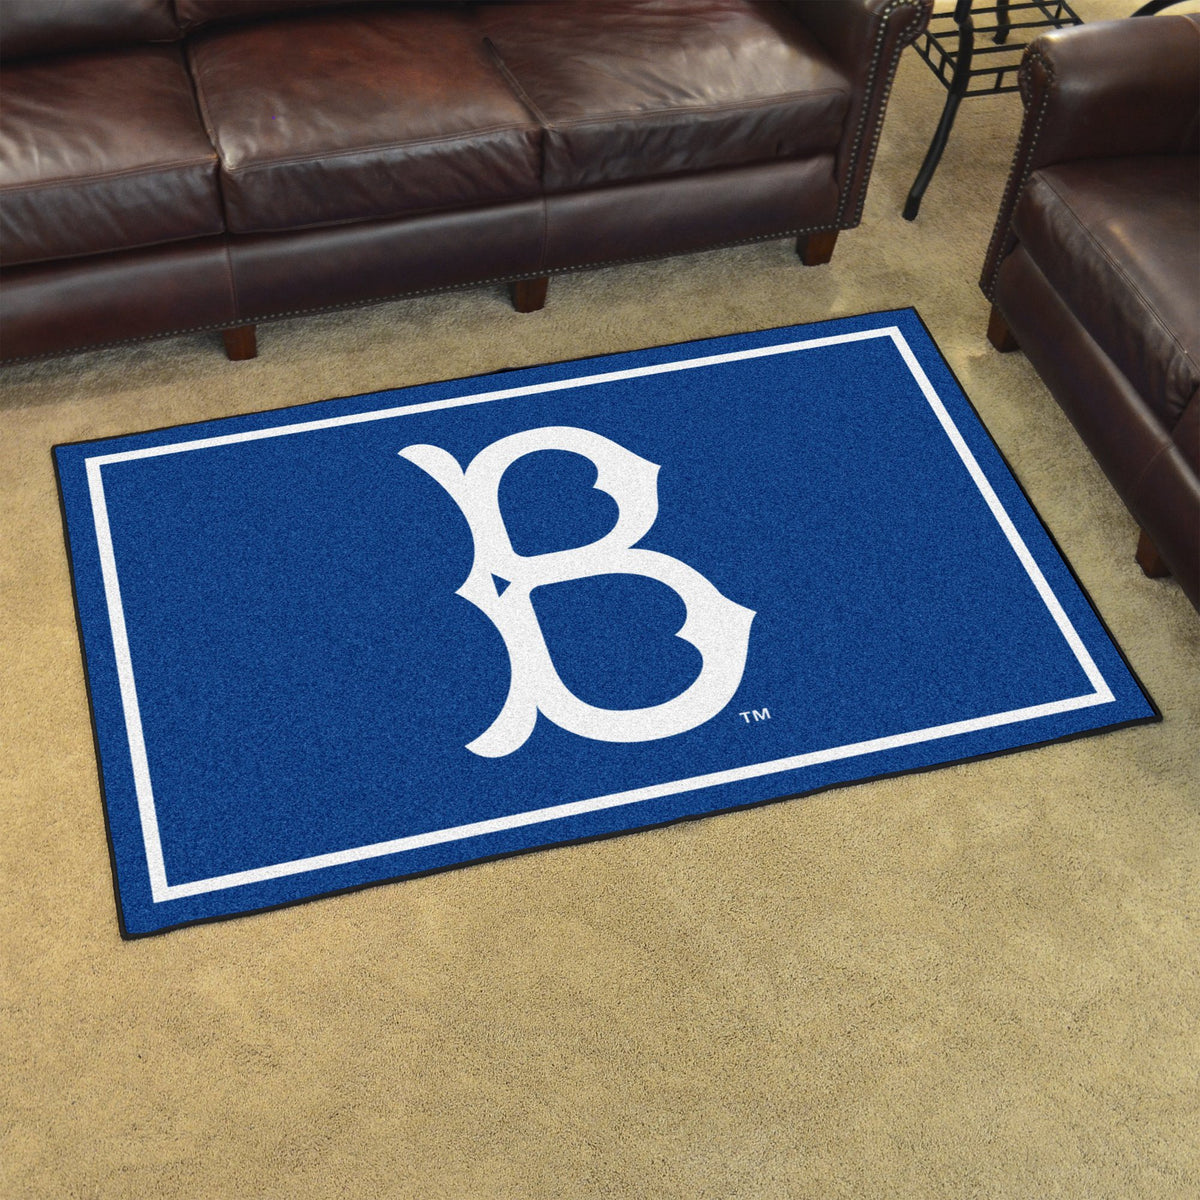 MLB Retro - 4' x 6' Rug MLB Retro Mats, Plush Rugs, 4x6 Rug, MLB, Home Fan Mats Brooklyn Dodgers 2